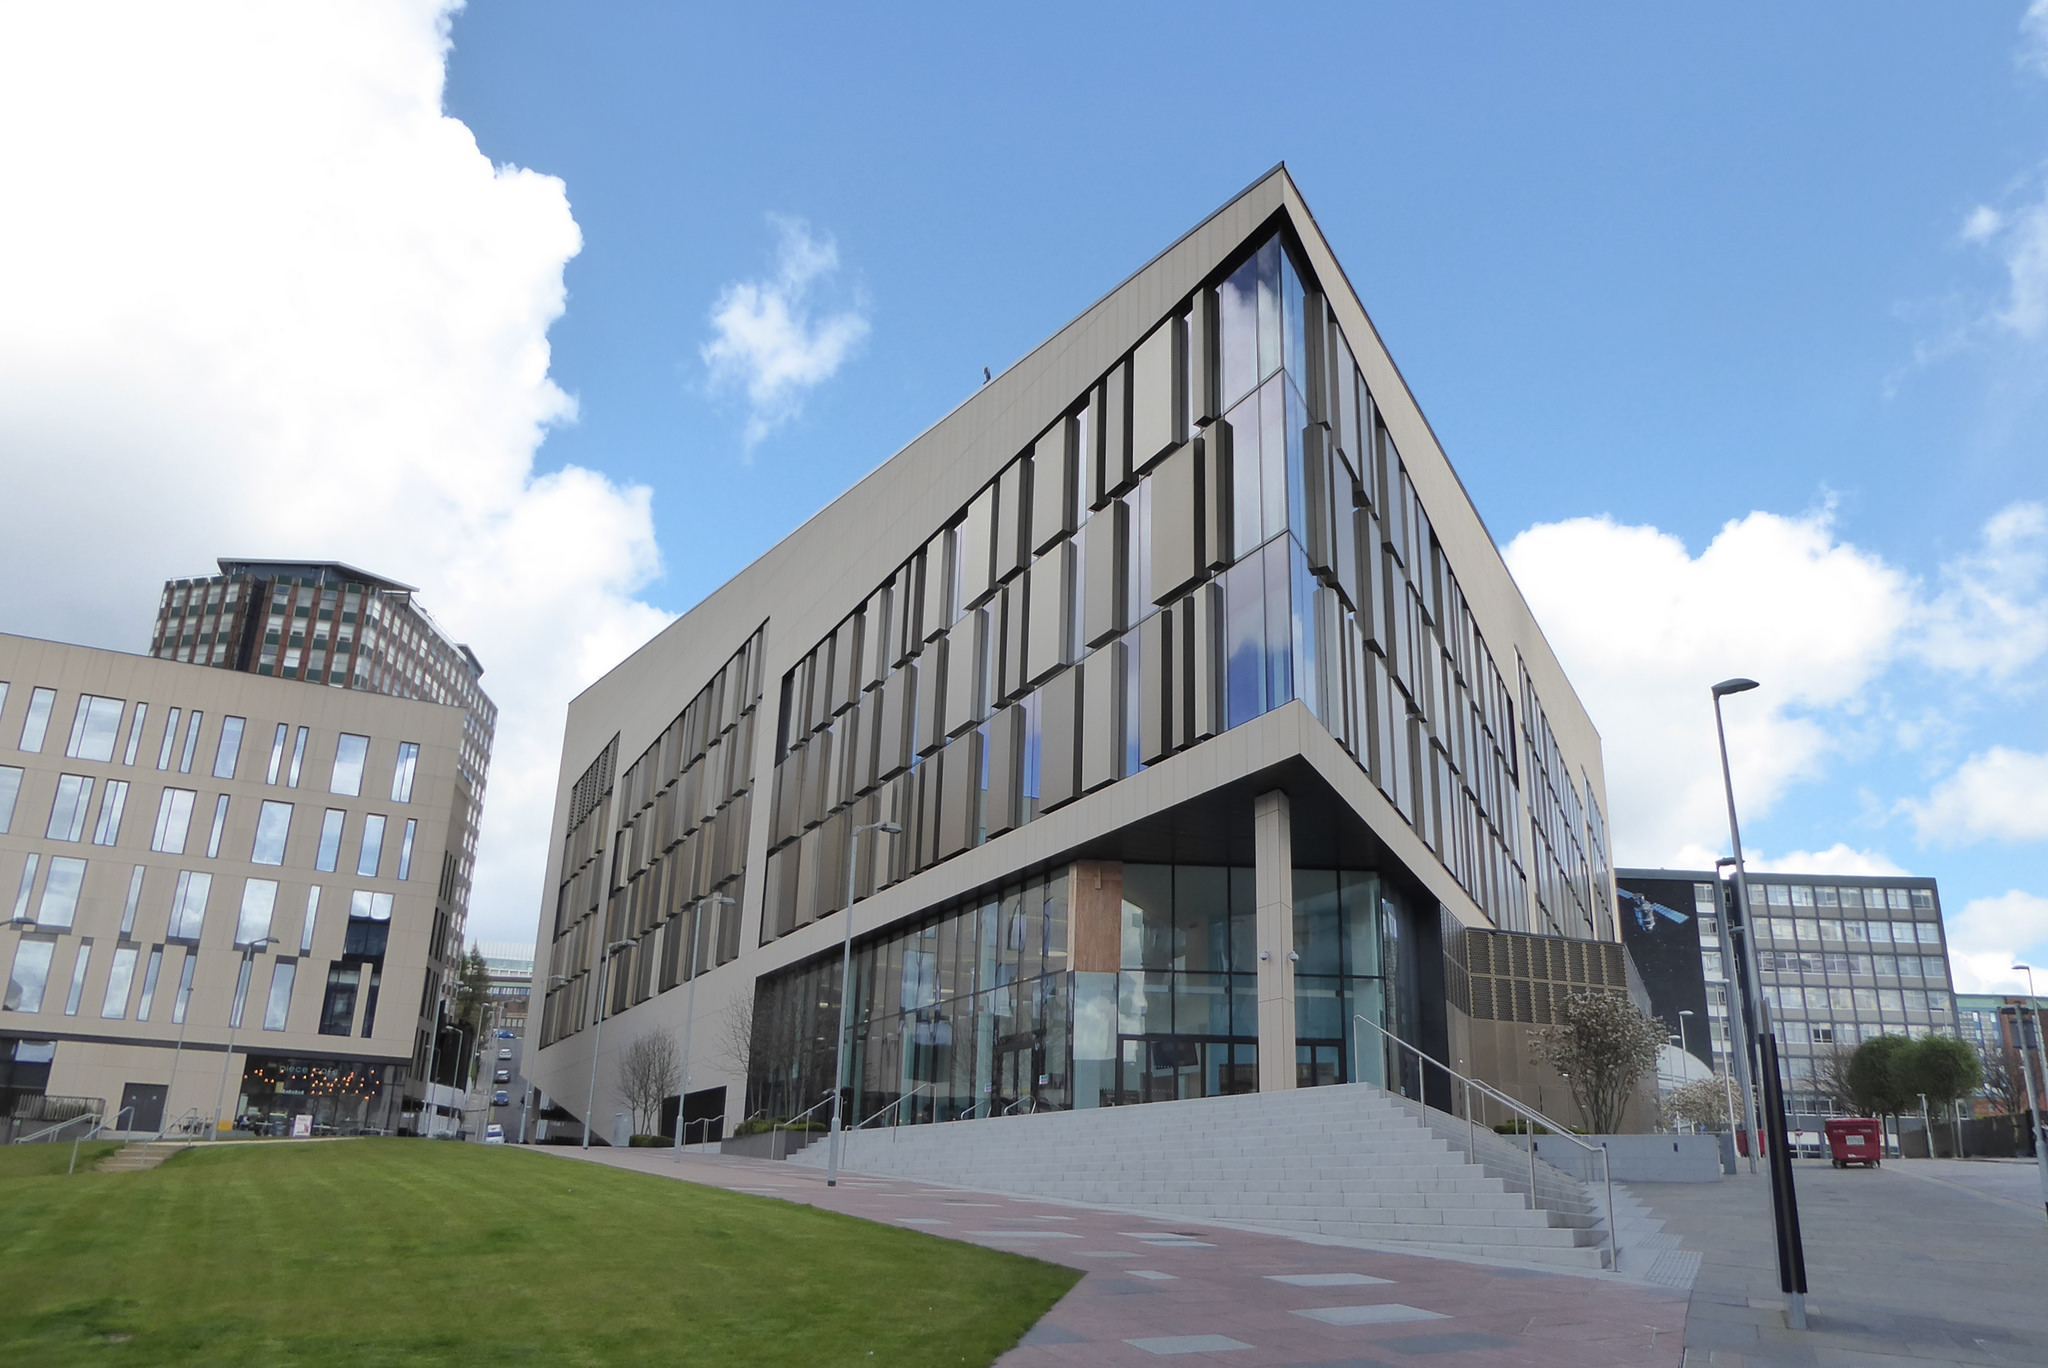 The Technology Innovation Centre, Strathclyde University